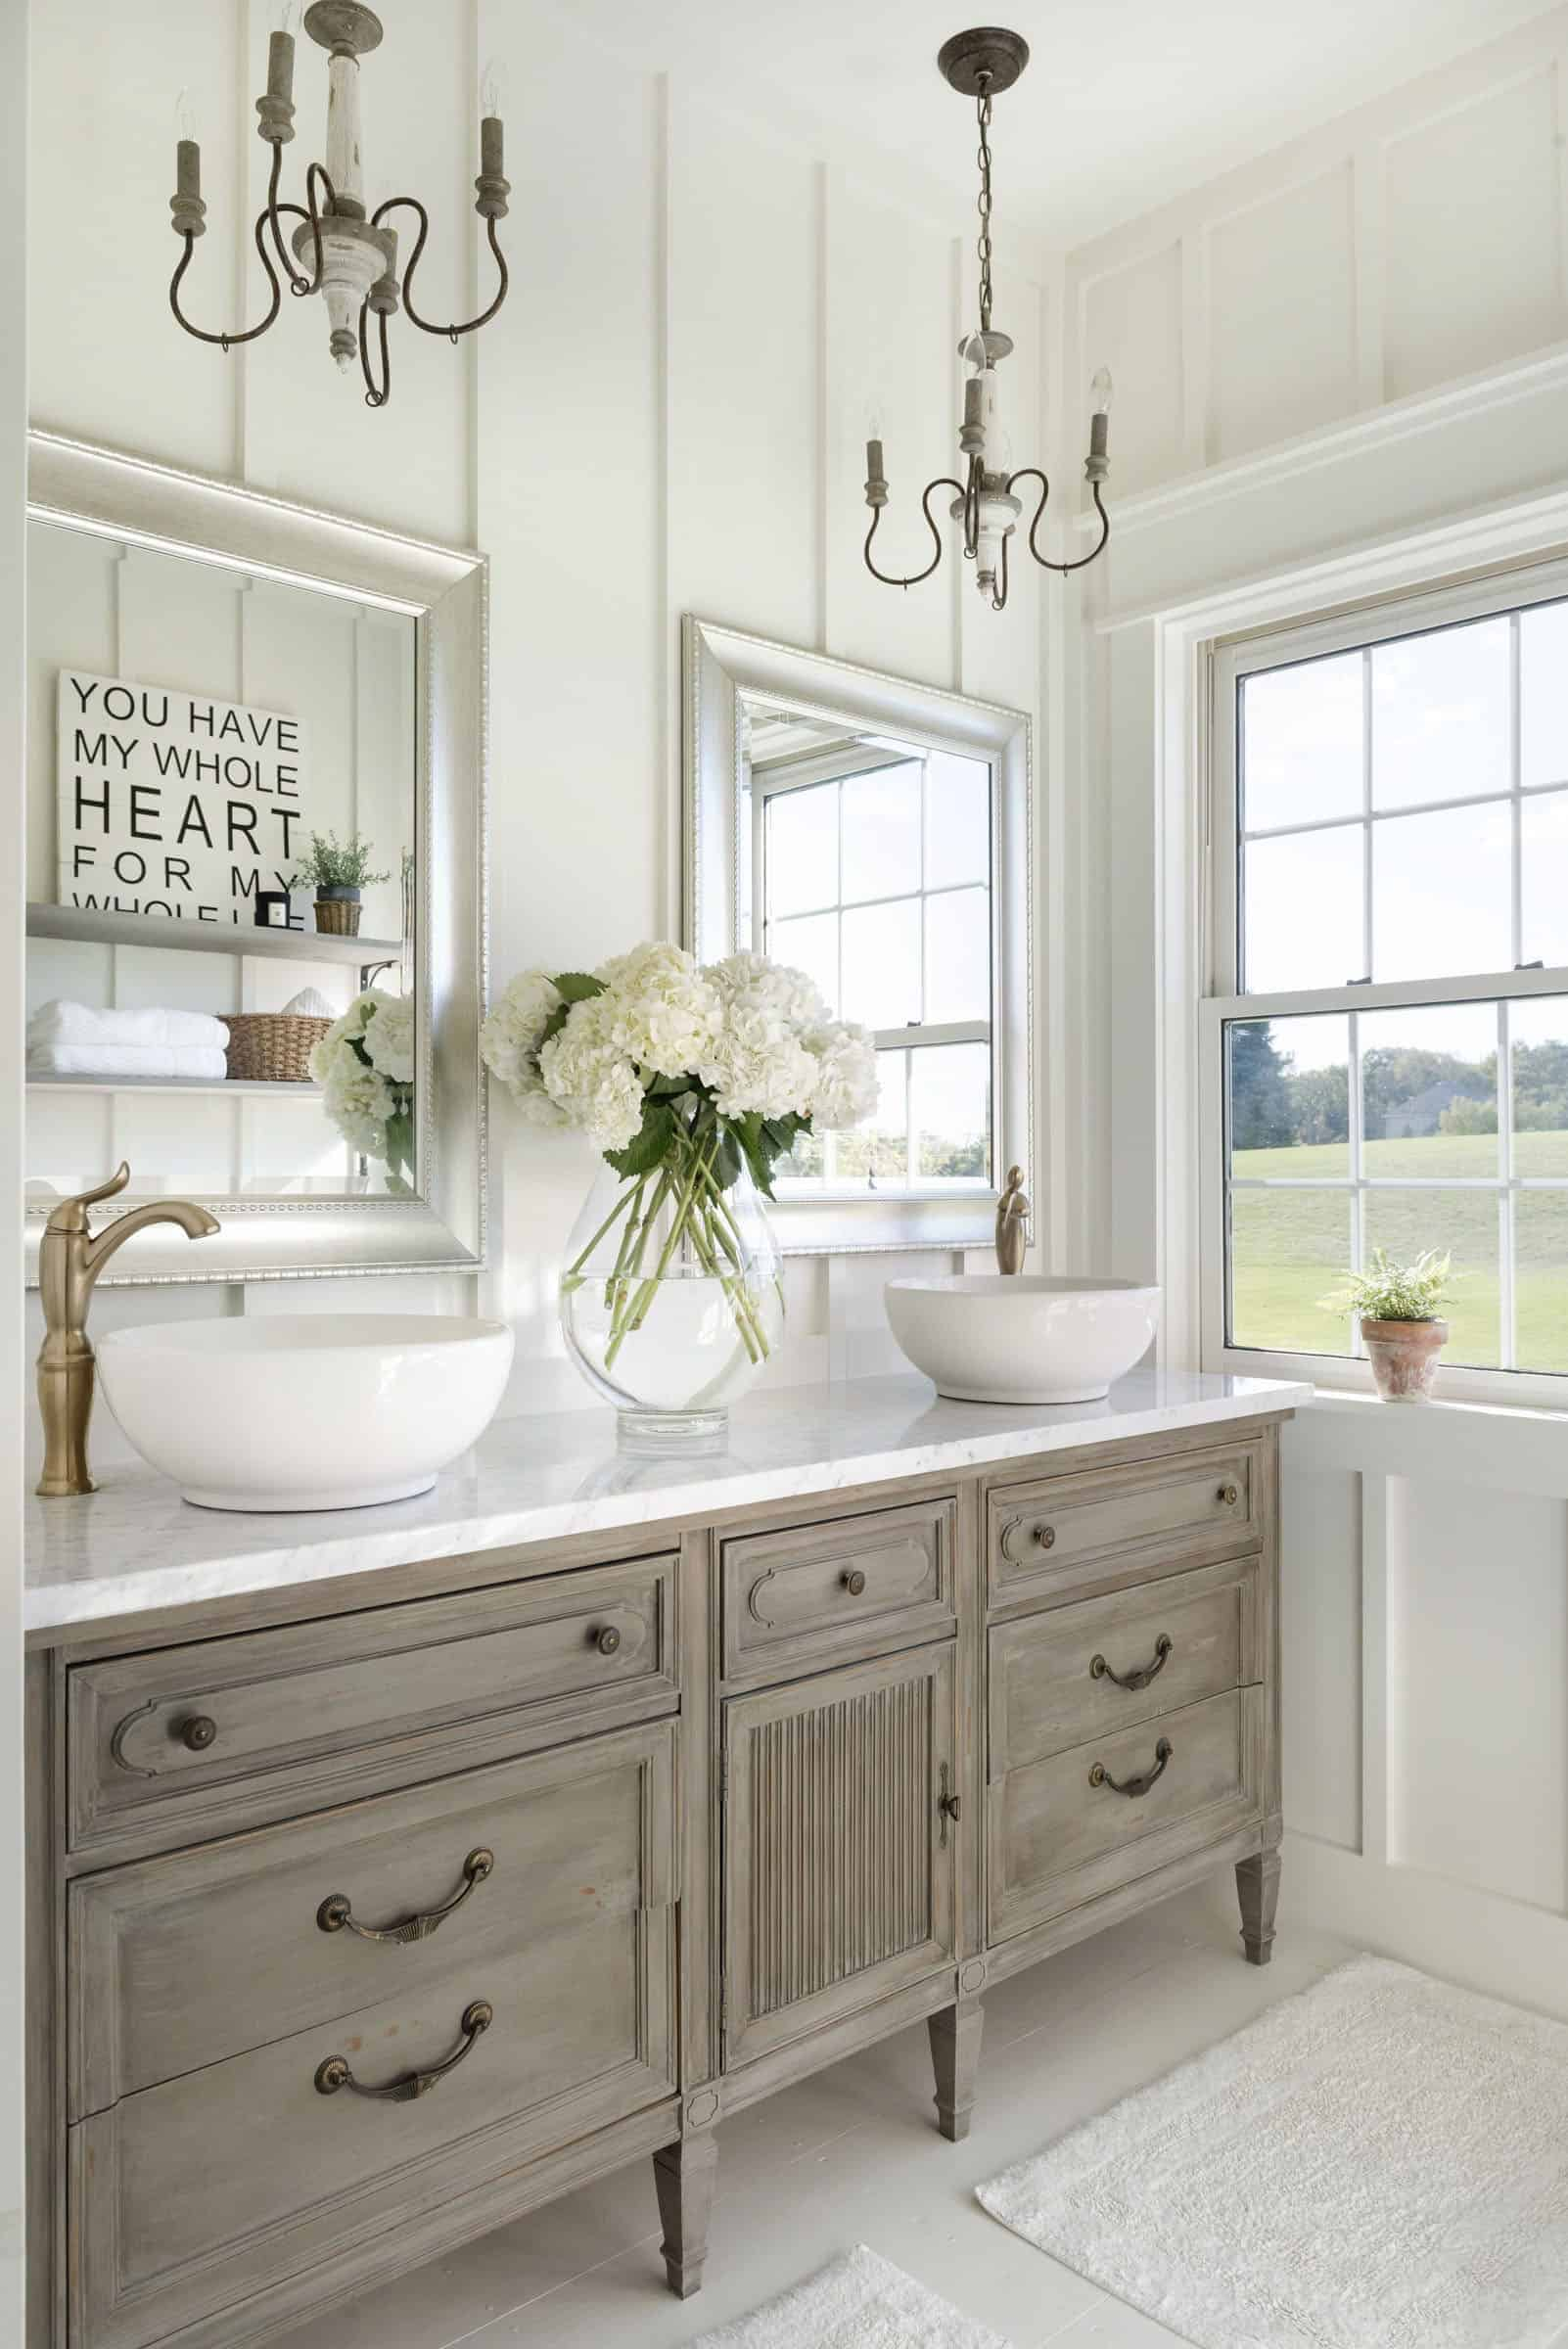 modern bathroom in country style